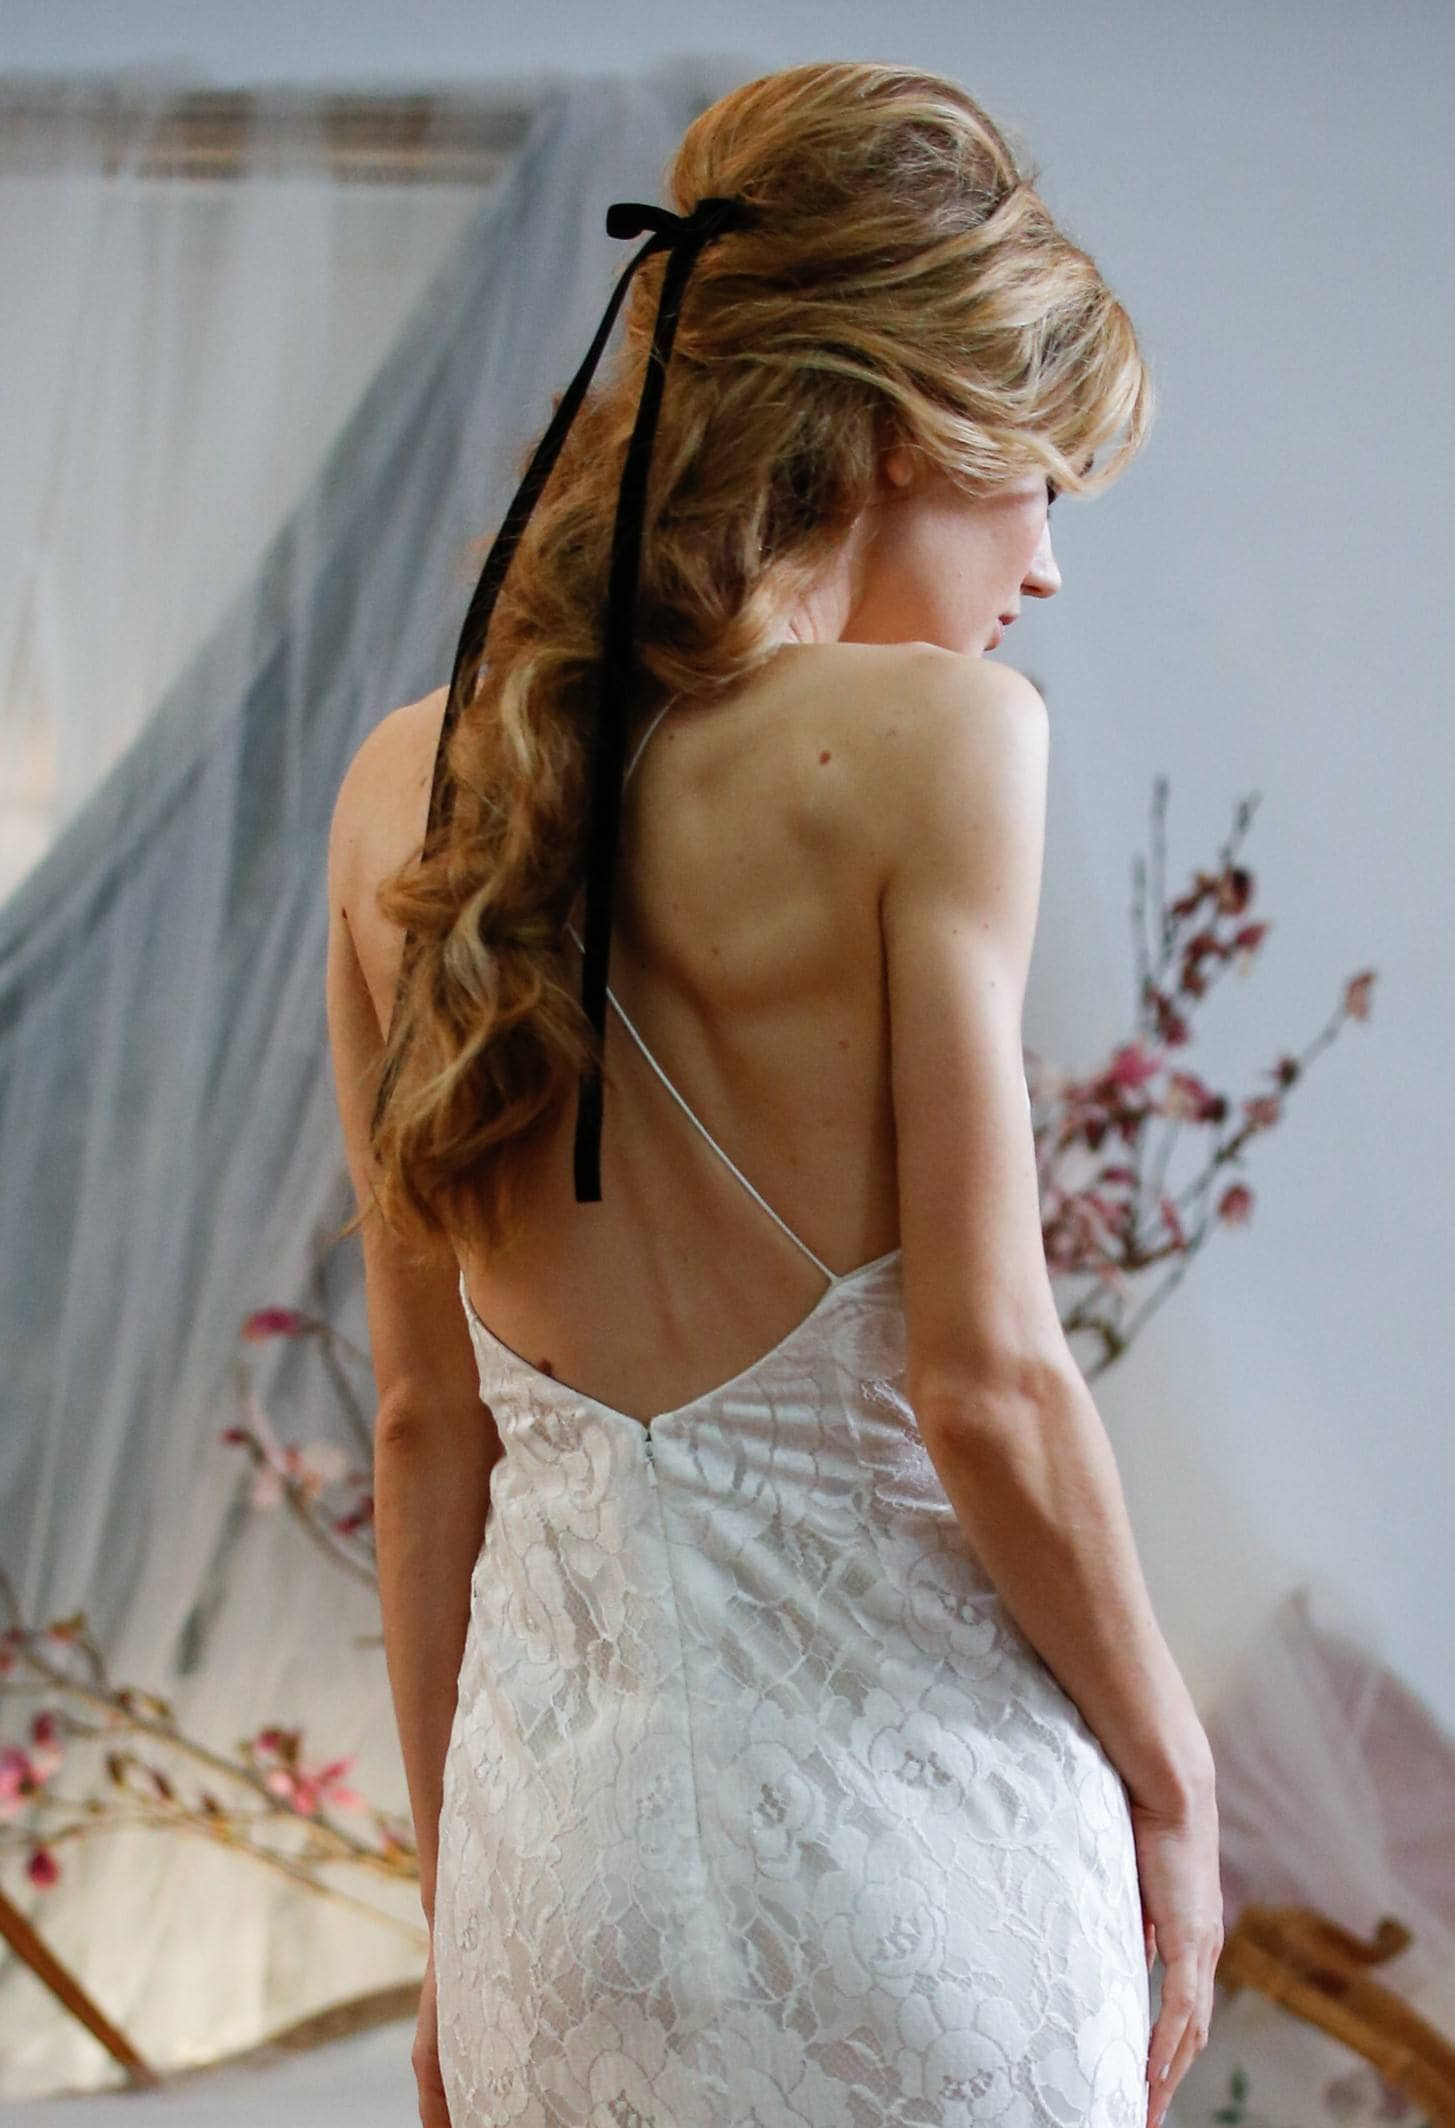 bridal model with her blonde hair in a half up half down hairstyle with a black ribbon accessory